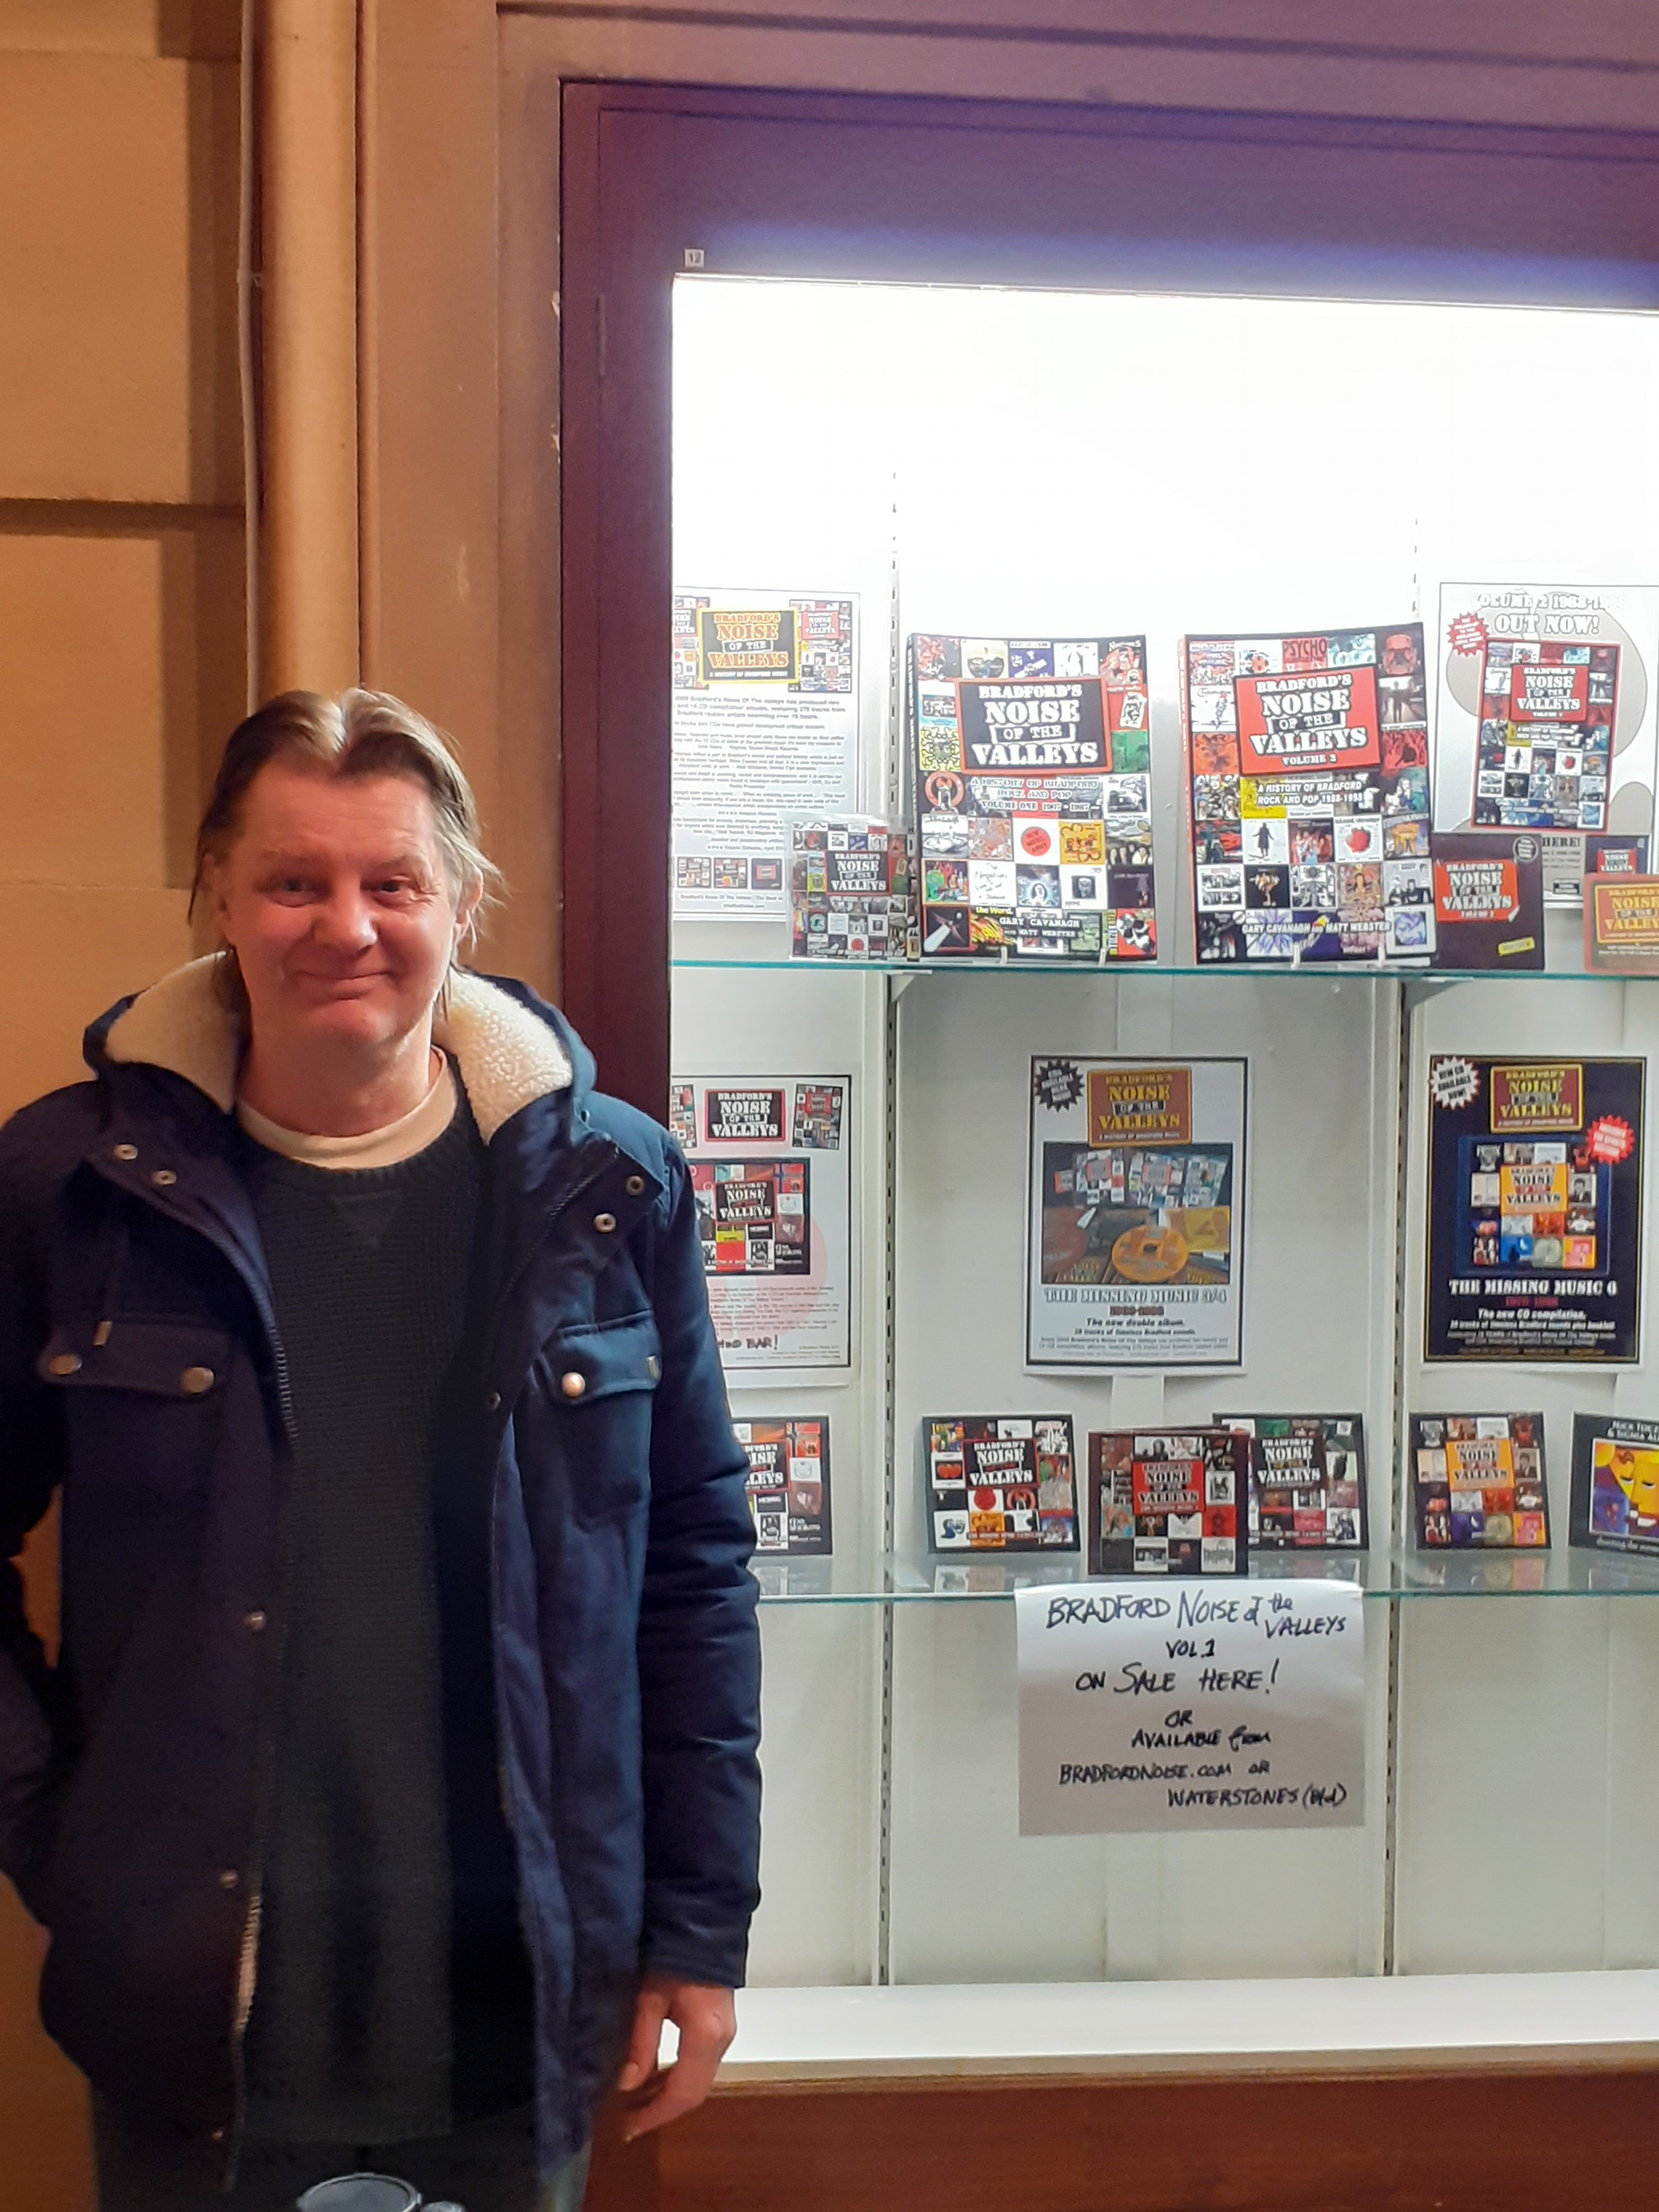 Gary - contributor to the show and author of Bradford's Noise of the Valleys with Matt Webster.